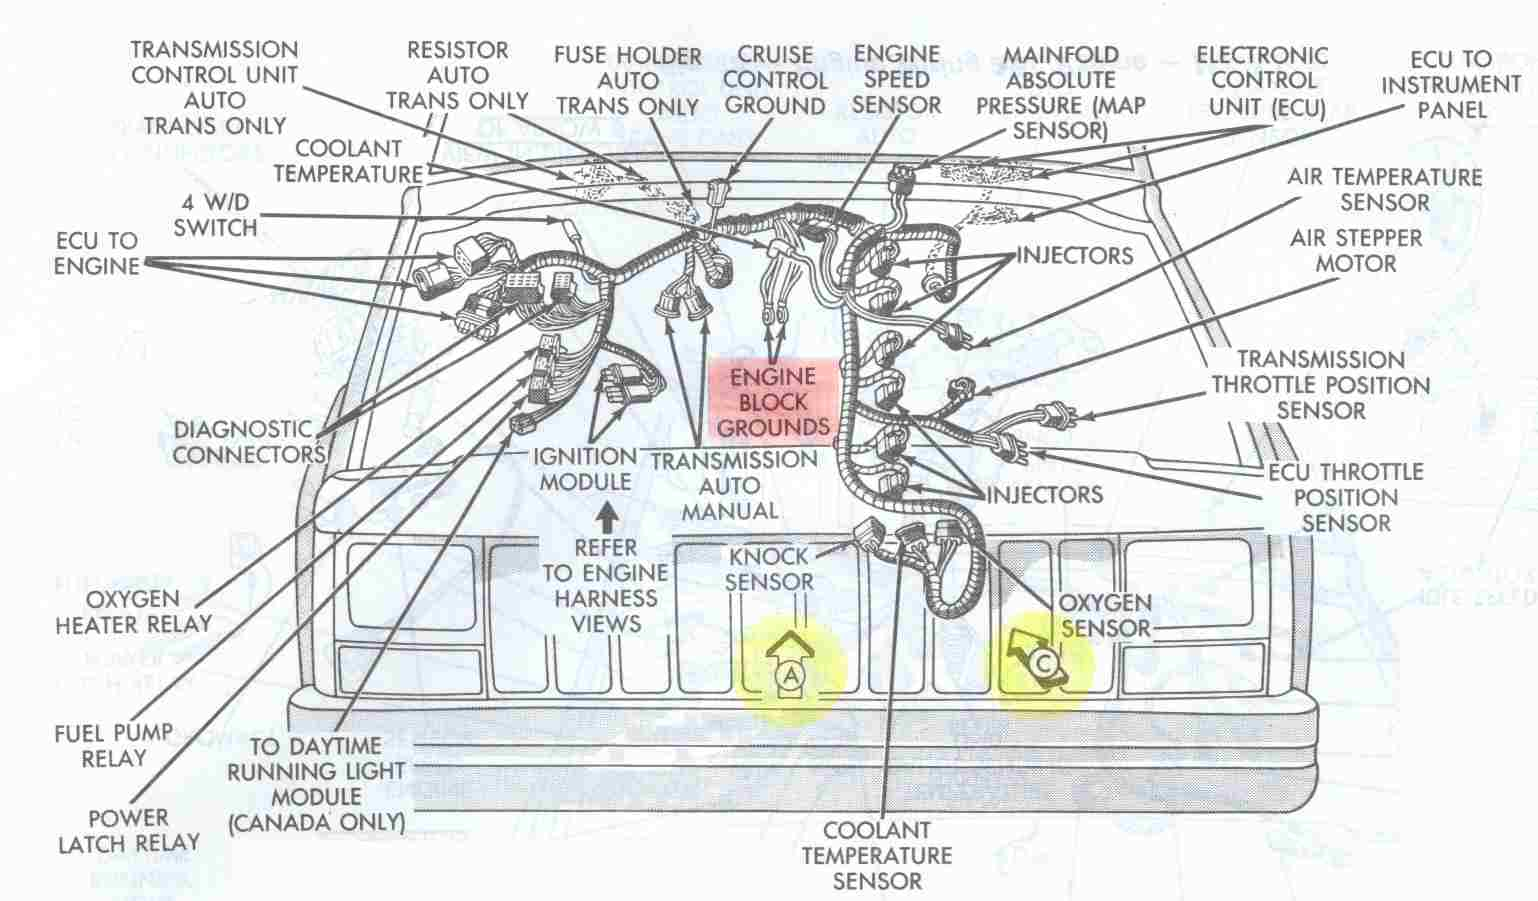 Electrical_Engine_Ground_Points_Overview jeep cherokee electrical diagnosing erratic behavior of engine 2001 jeep cherokee wiring harness at gsmx.co